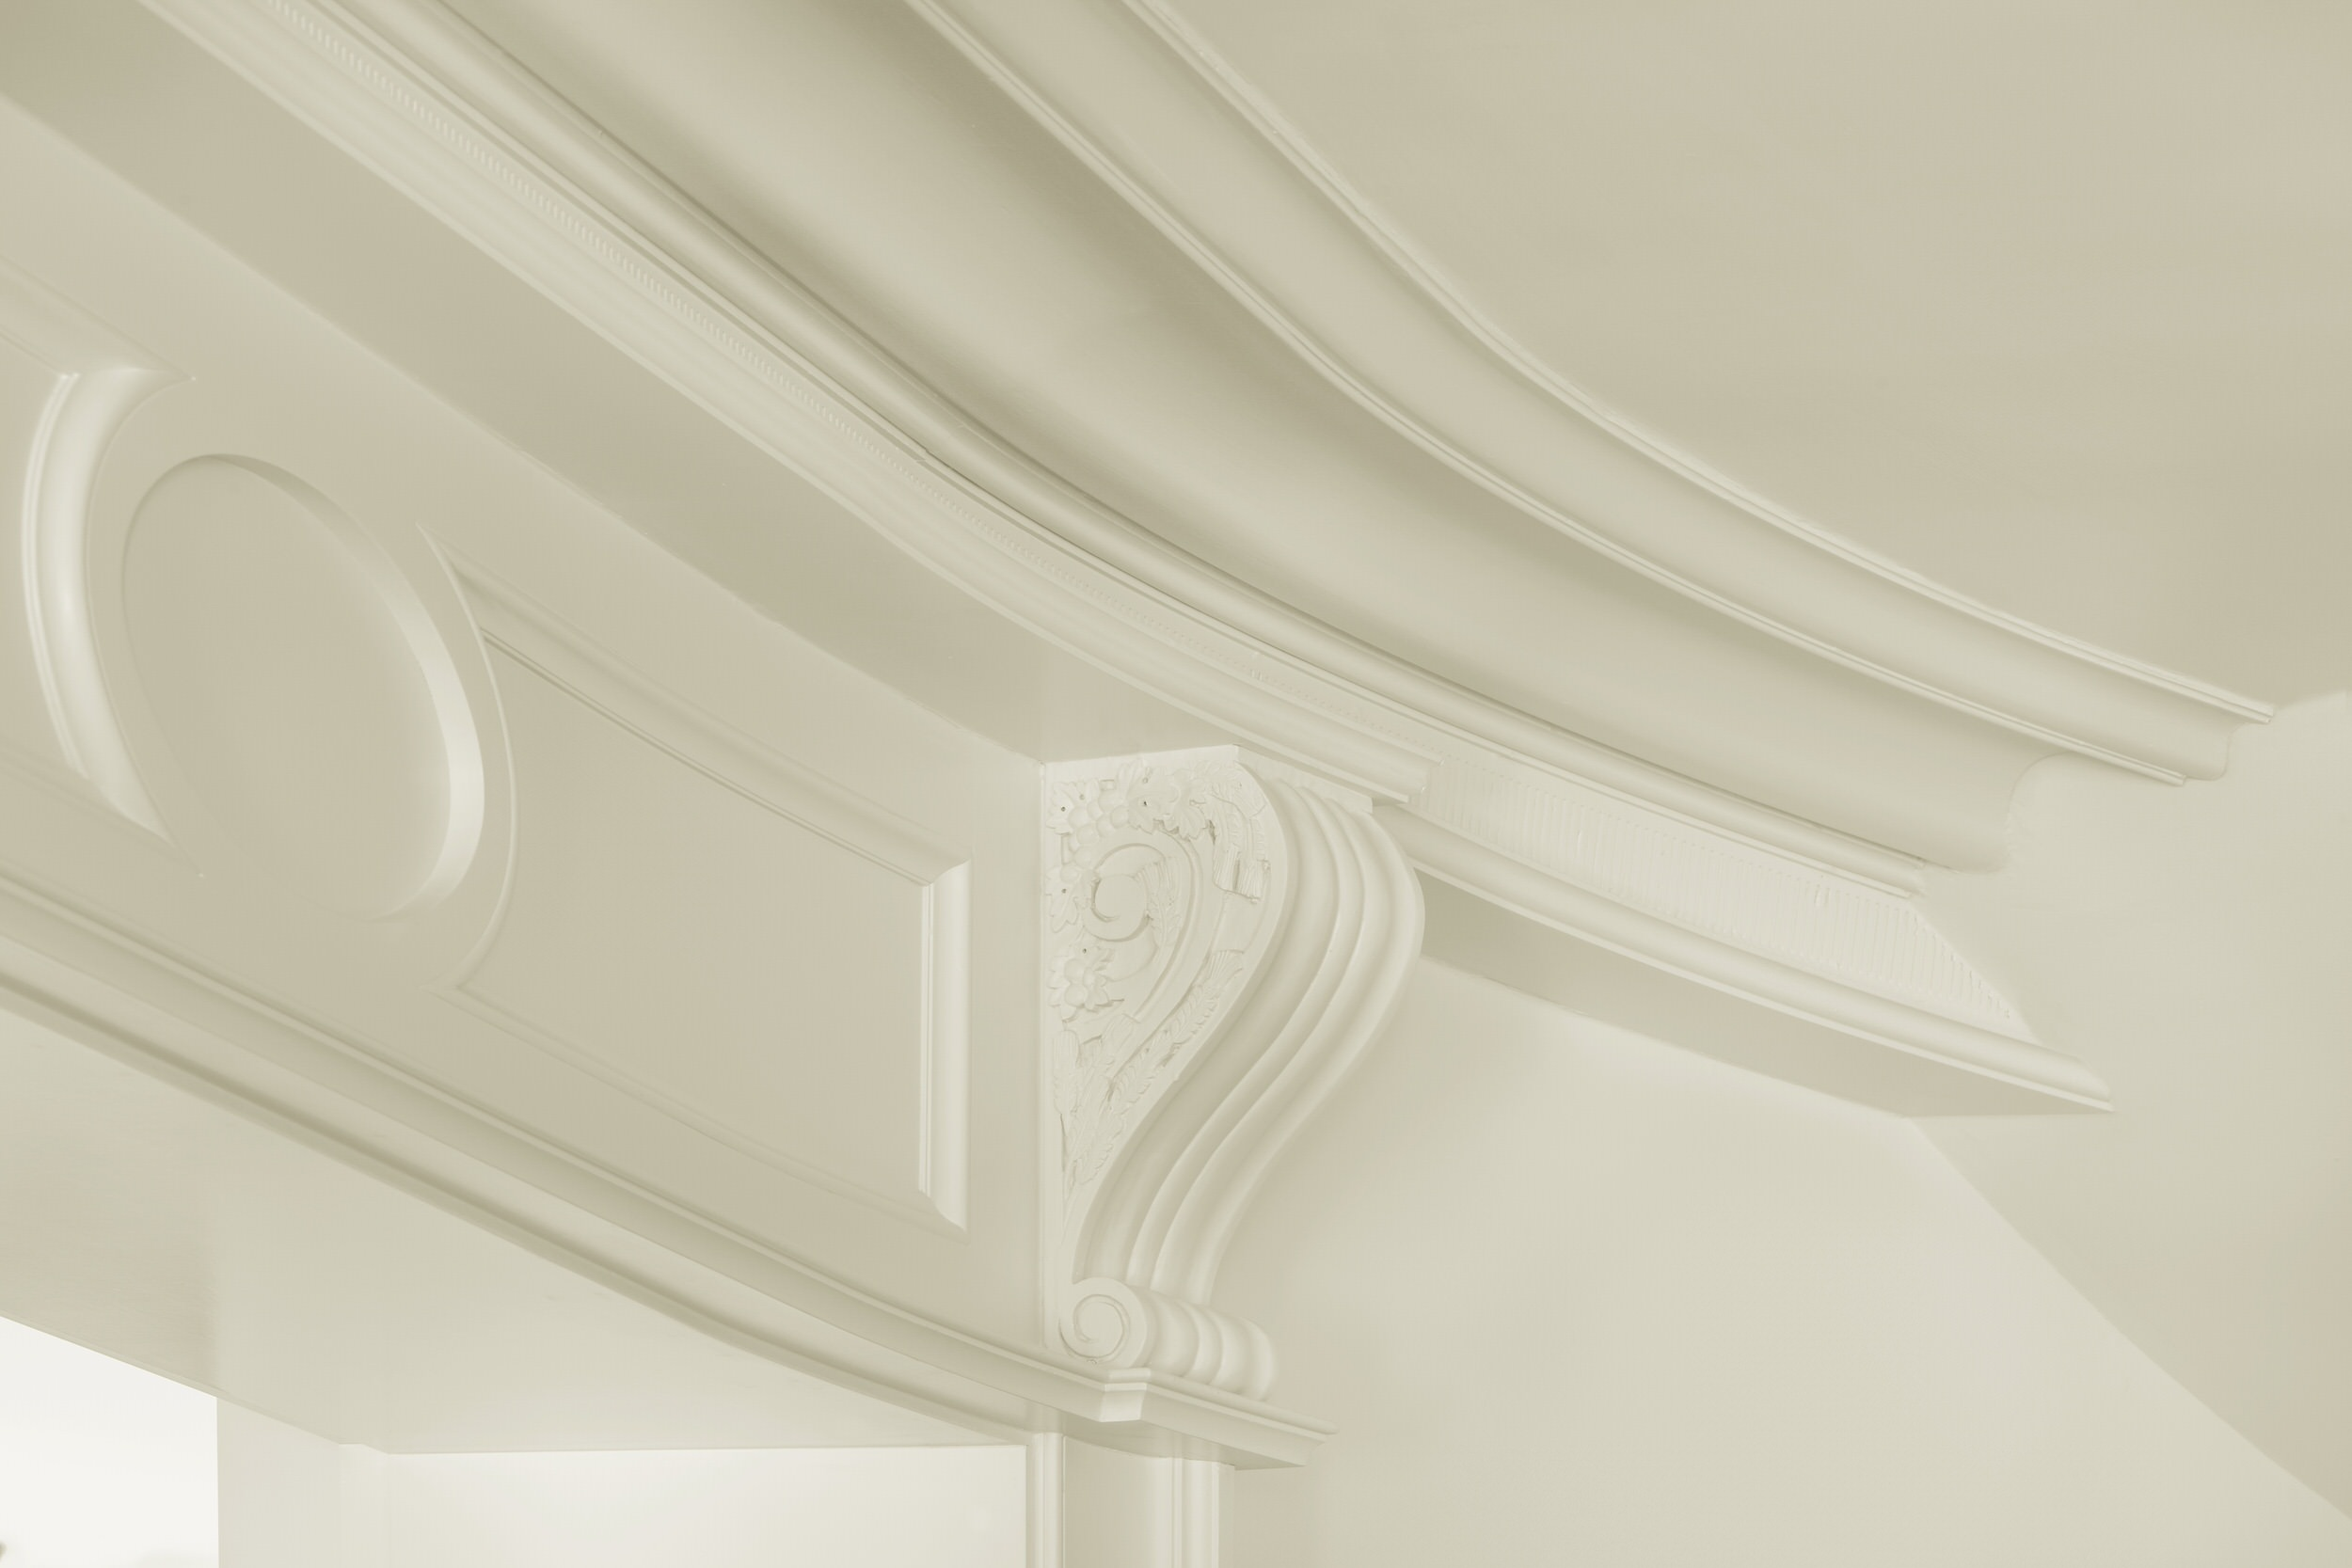 Detail of entry hall millwork